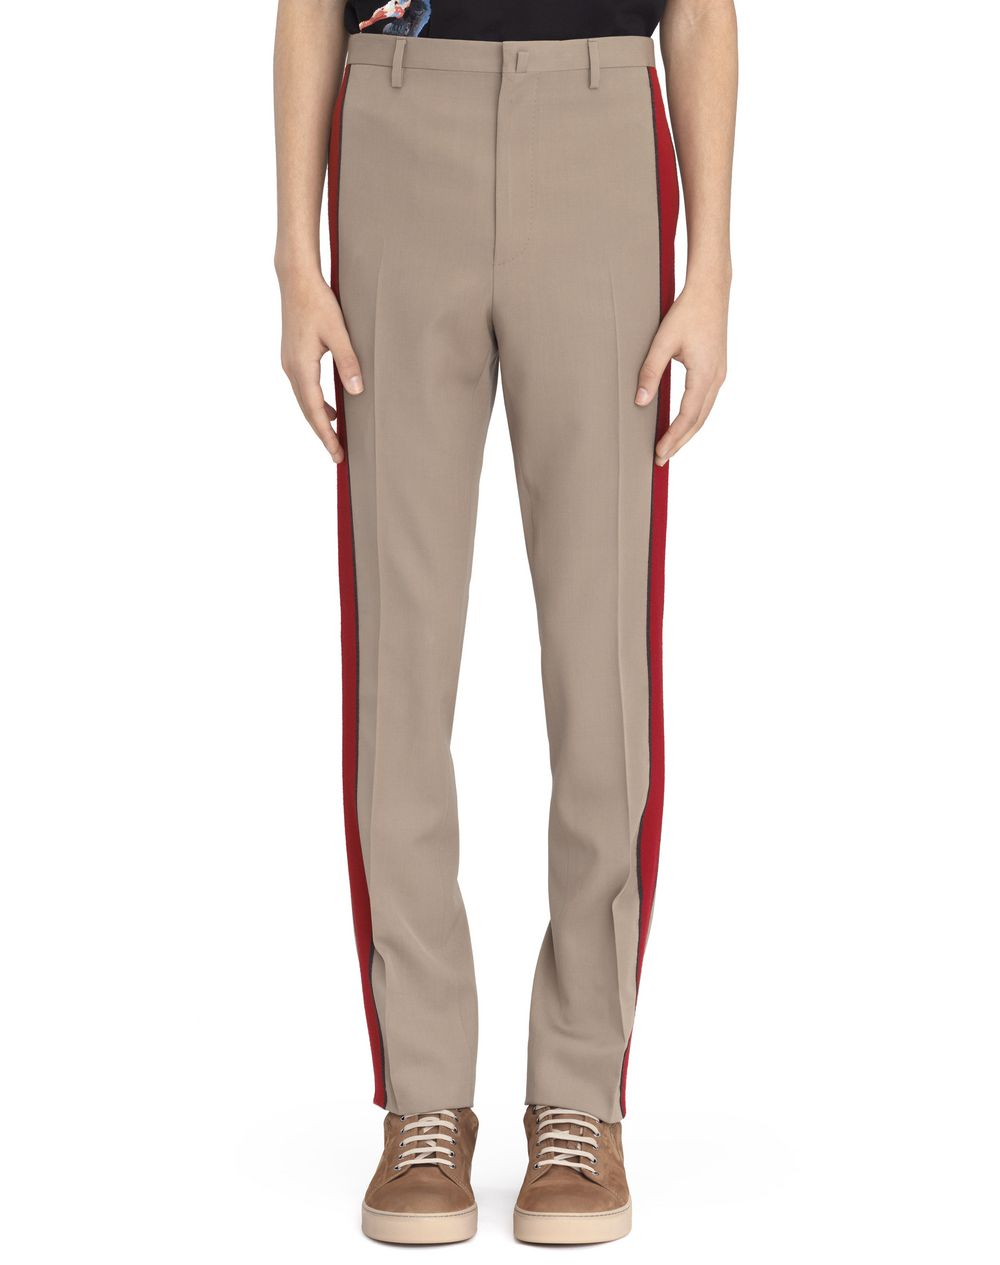 STRAIGHT-FIT PANTS WITH STRIPE  - Lanvin